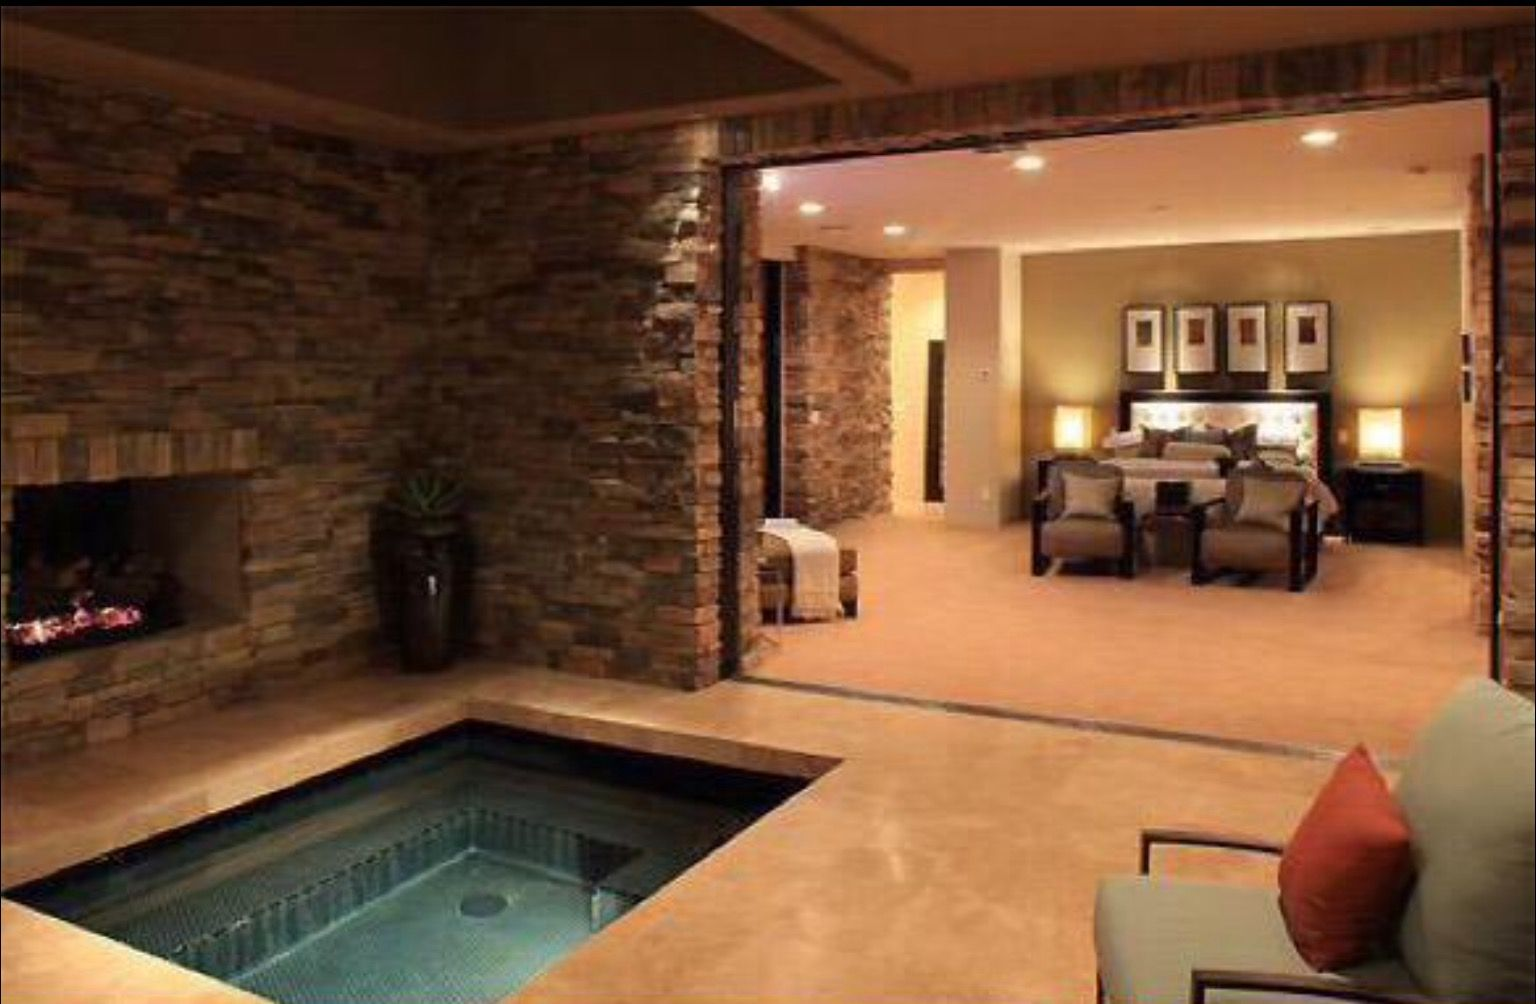 Jacuzzi in master bedroom  Master bedroom with hot tub and fireplace  home  Pinterest  Hot